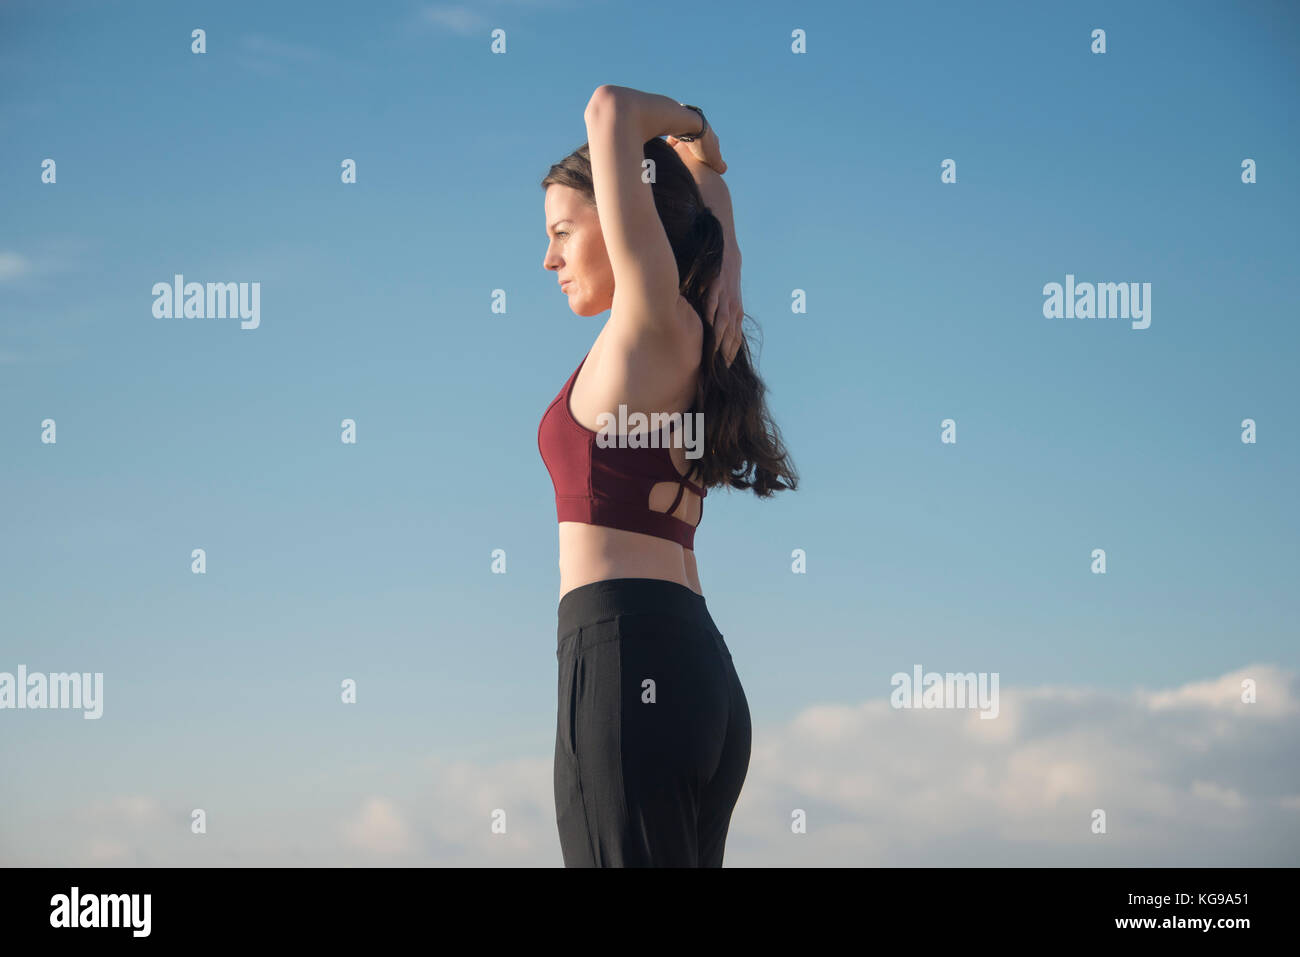 sporty woman wearing a sports bra doing an arm stretch outside keeping fit. - Stock Image